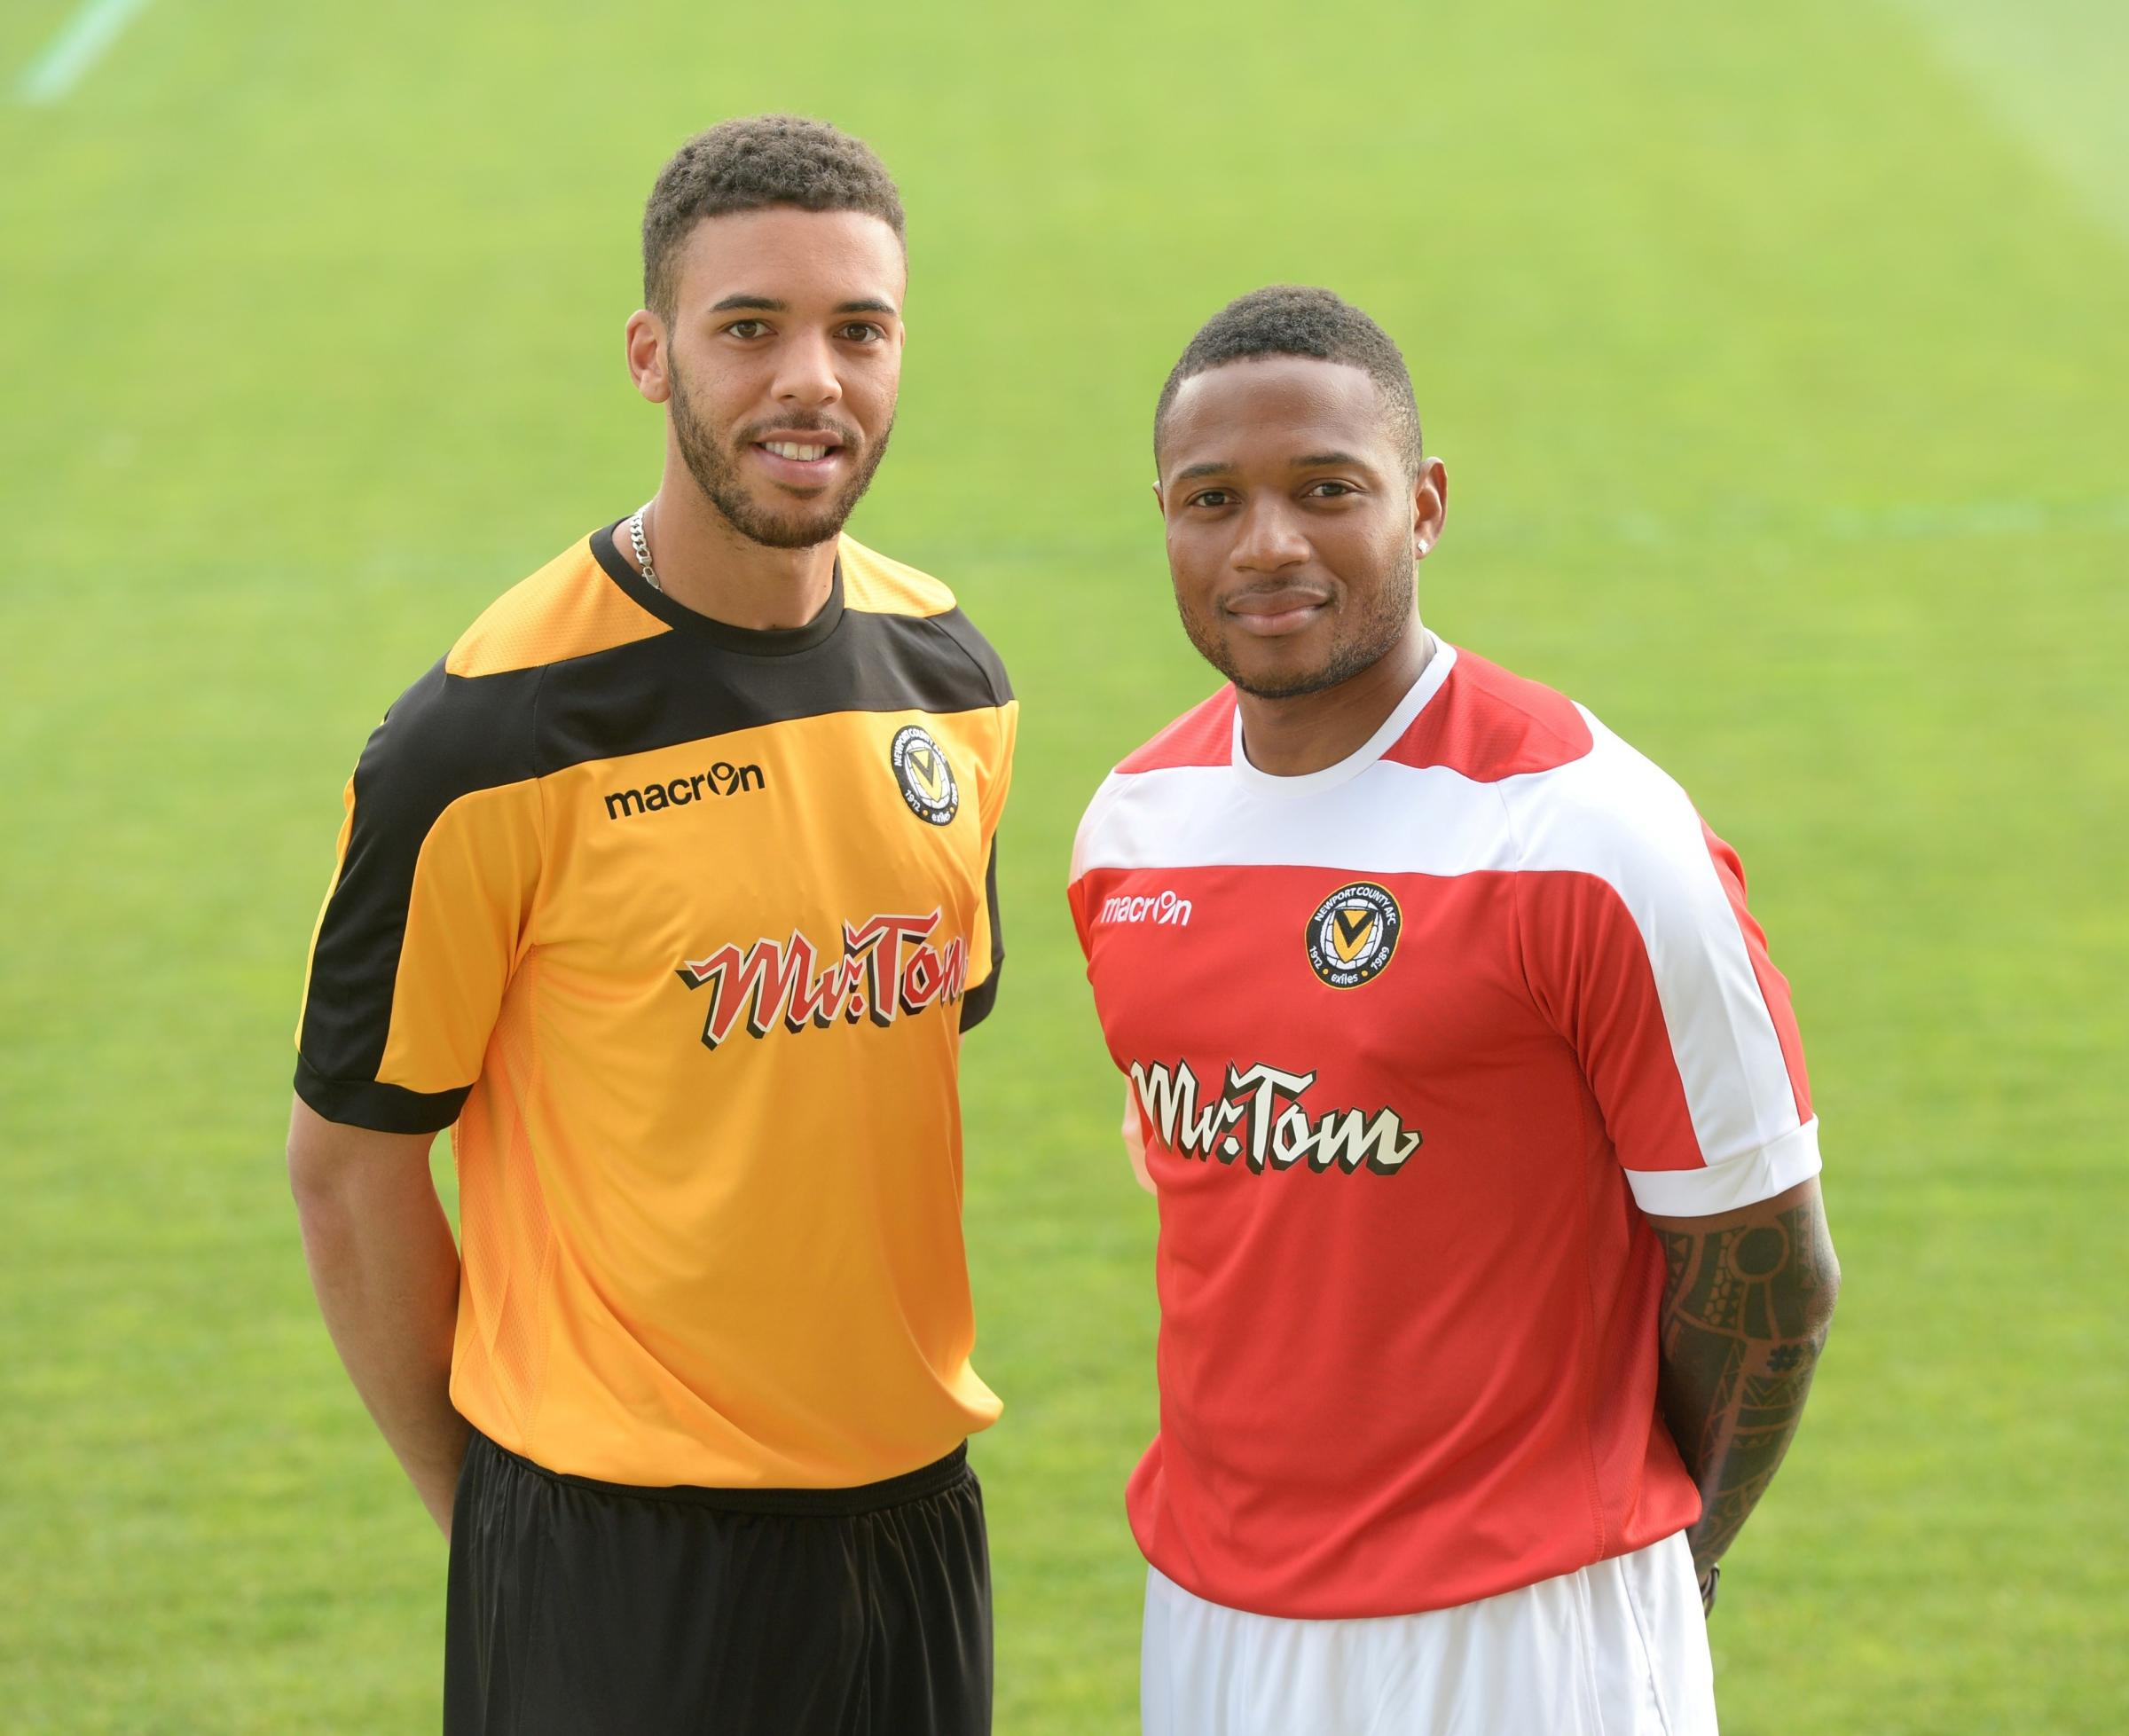 Launch of new Newport County home and away kits. The new home and away kits are modelled by players Christian Jolley and Aaron O'Connor. (5657985)